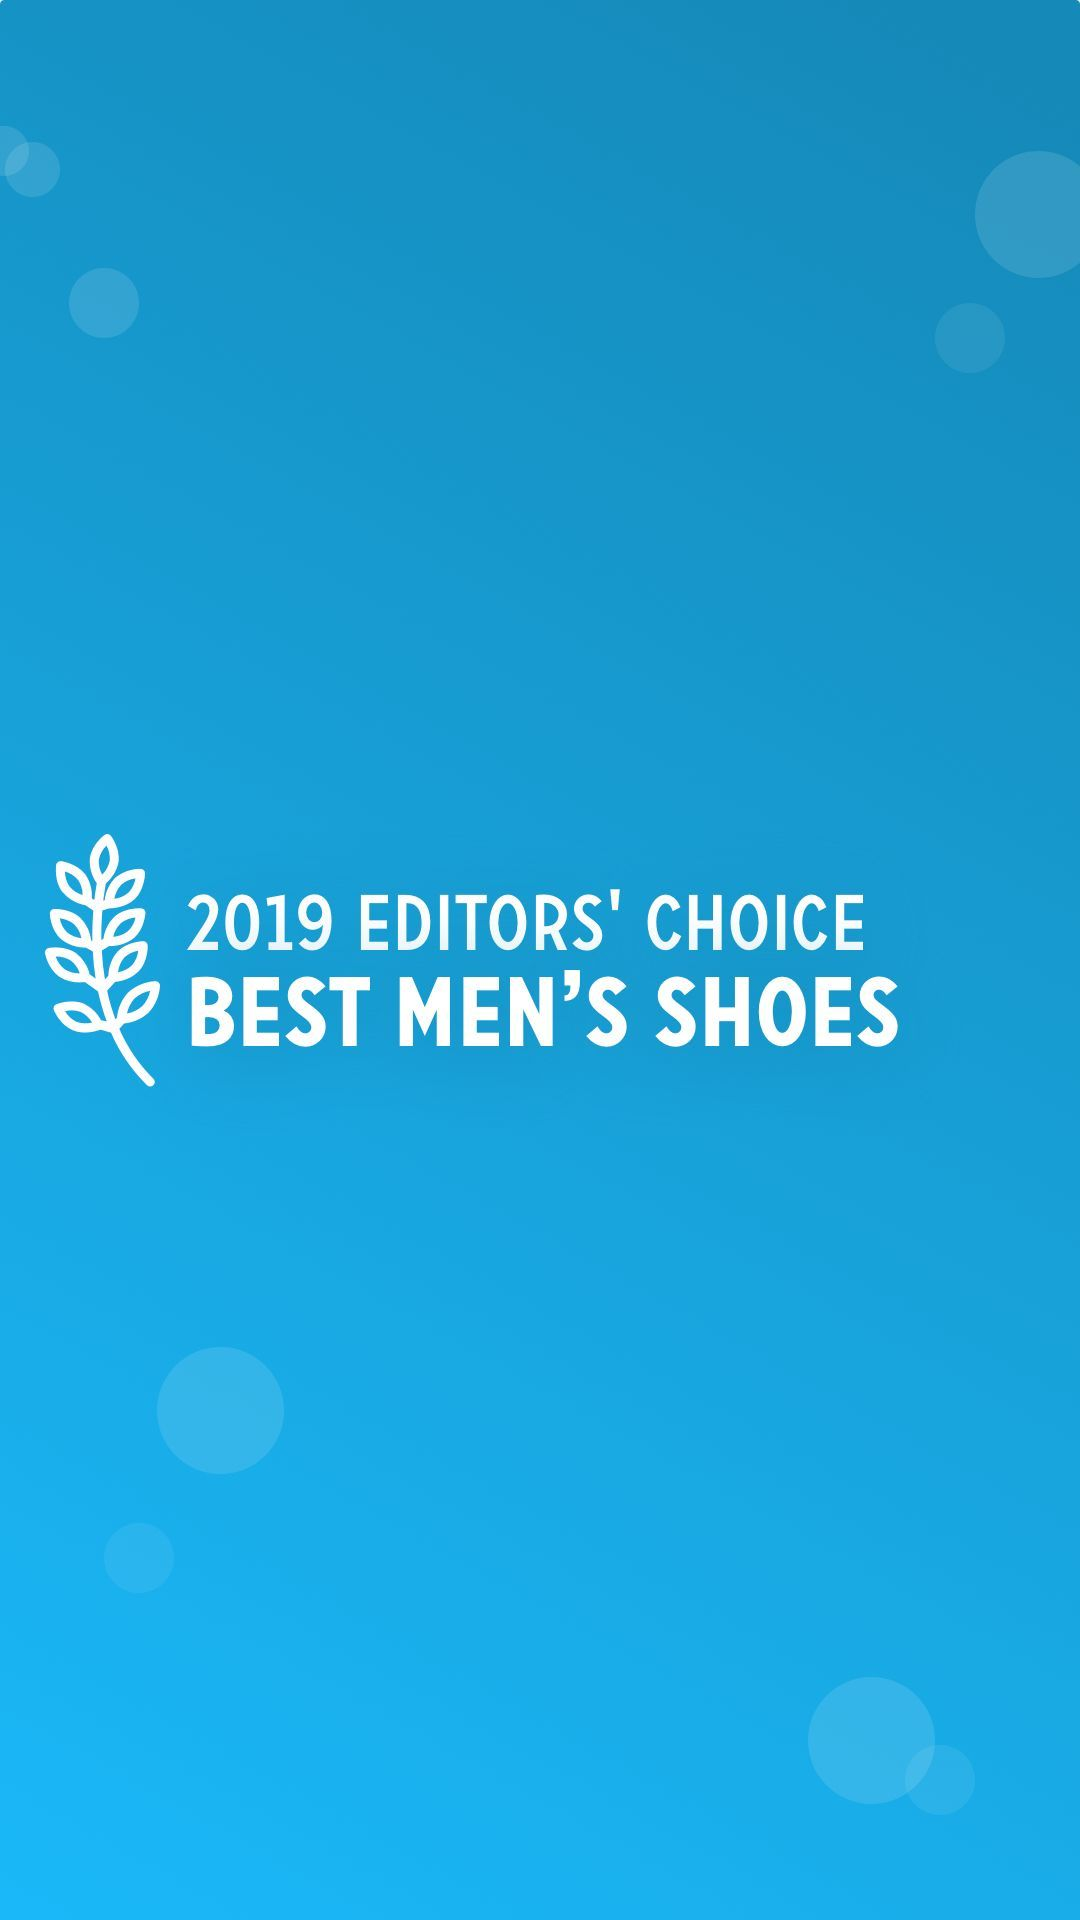 Editors choice awards best new travel shoes for men 2019